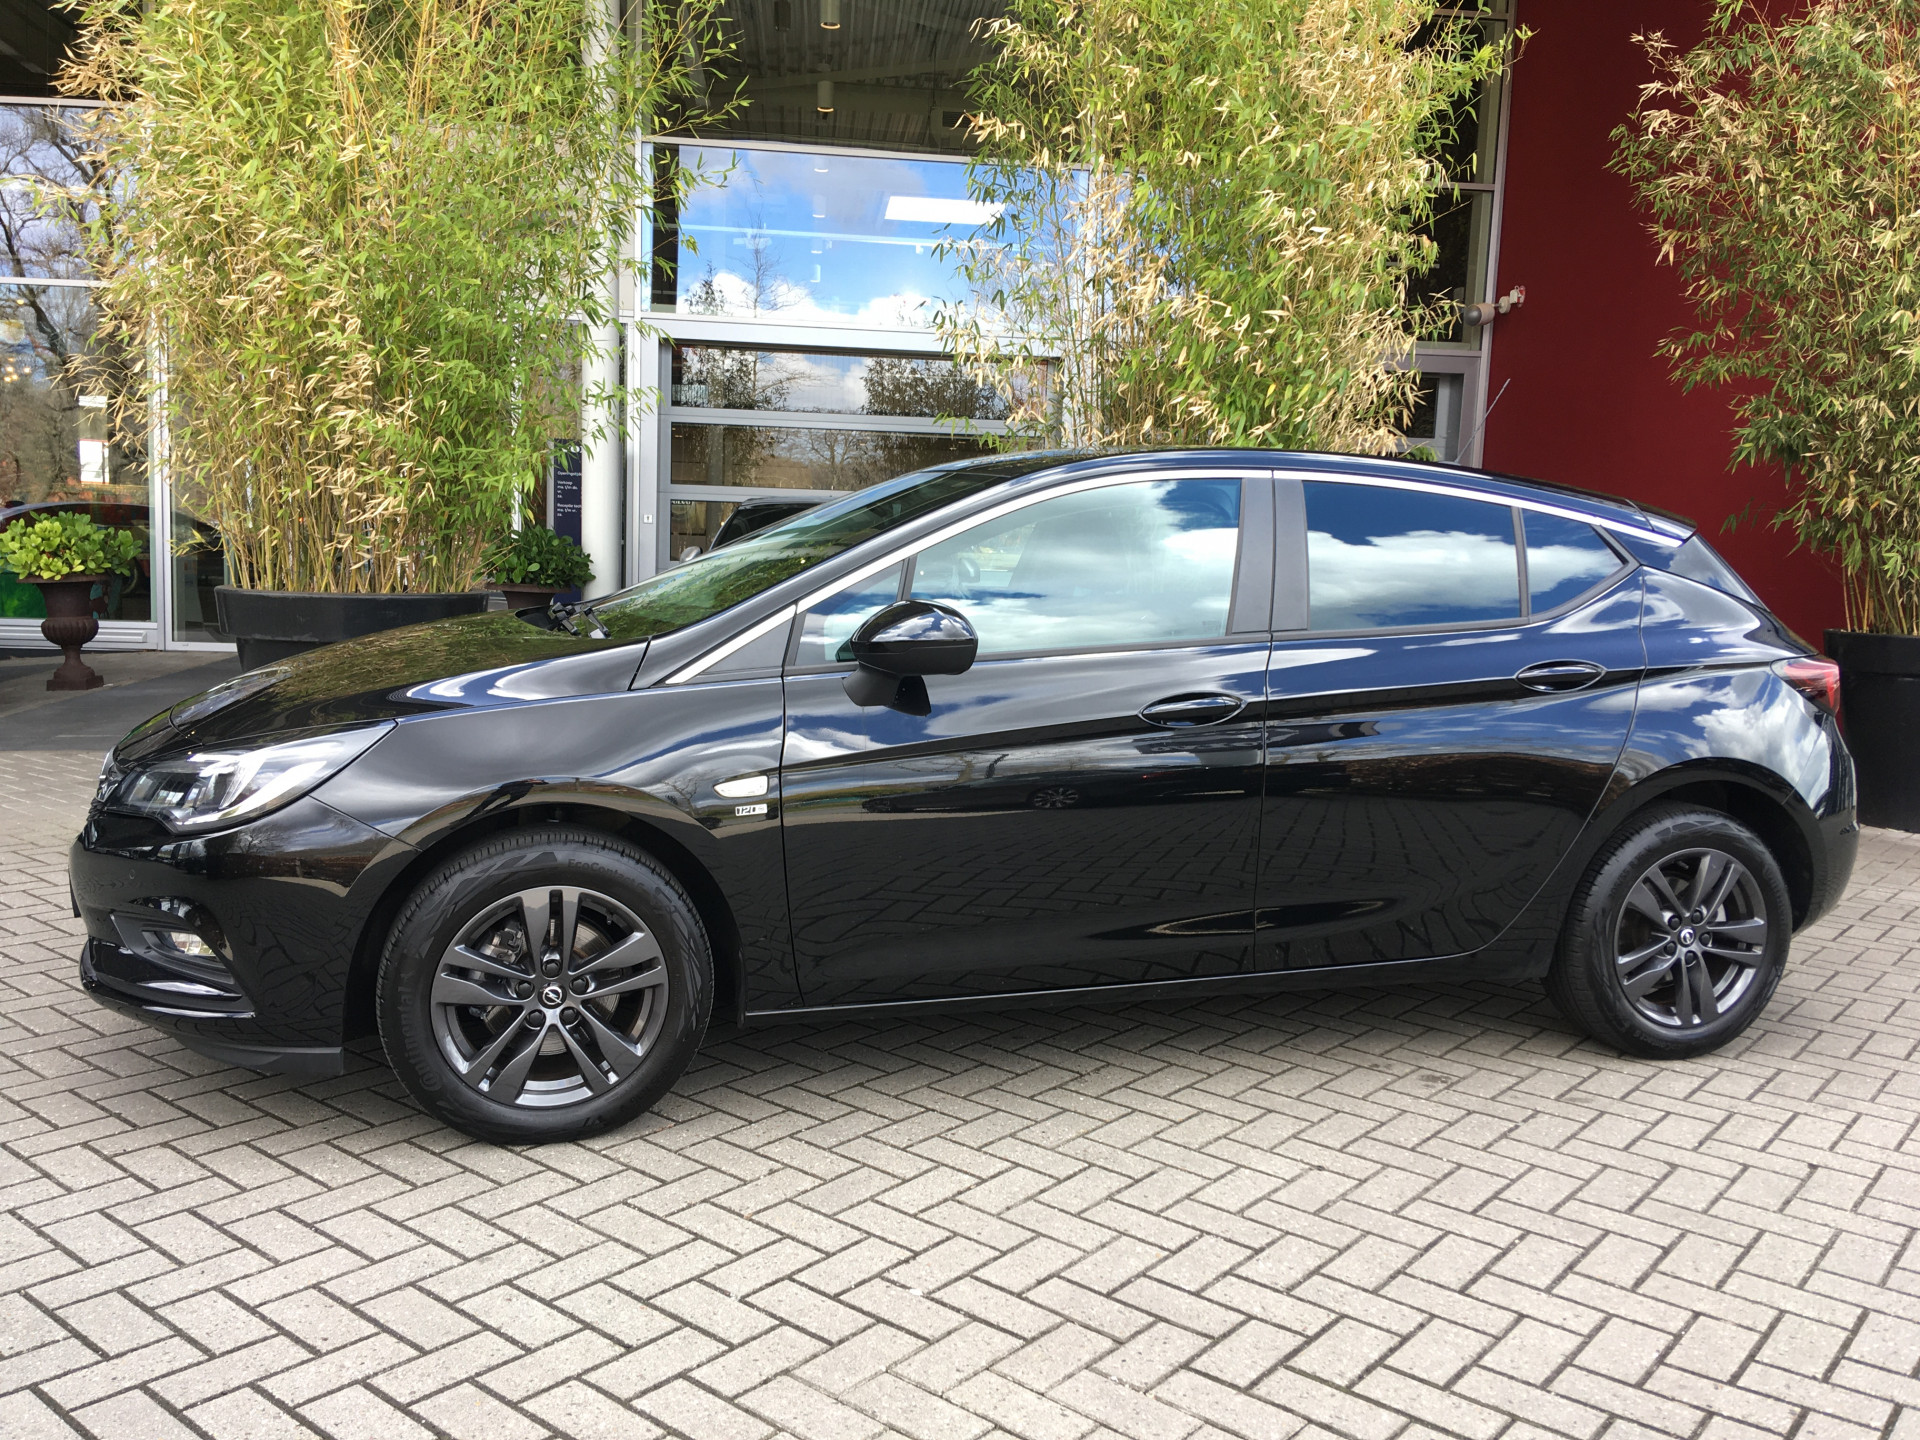 Opel Astra 1.0 Turbo 120 Jaar Edition